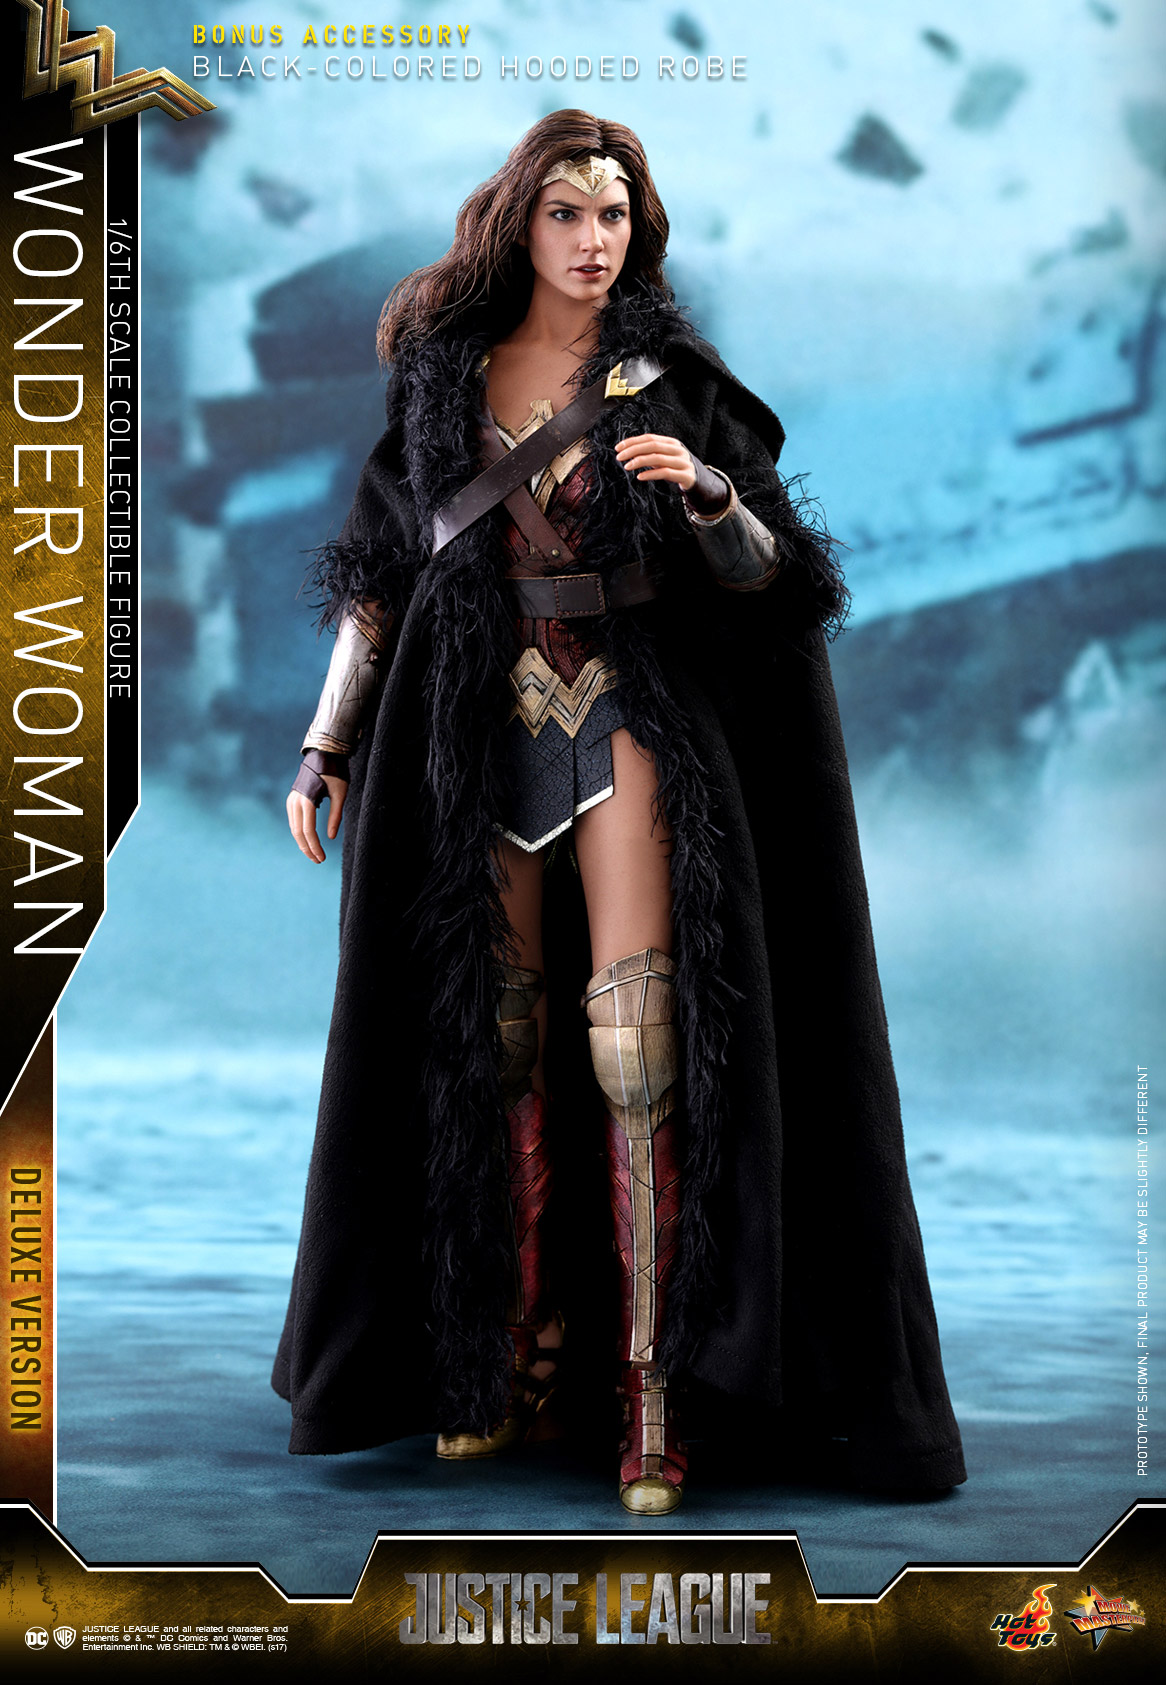 Hot-Toys-Justice-League-Wonder-Woman-collectible-figure-Deluxe_PR-6.jpg